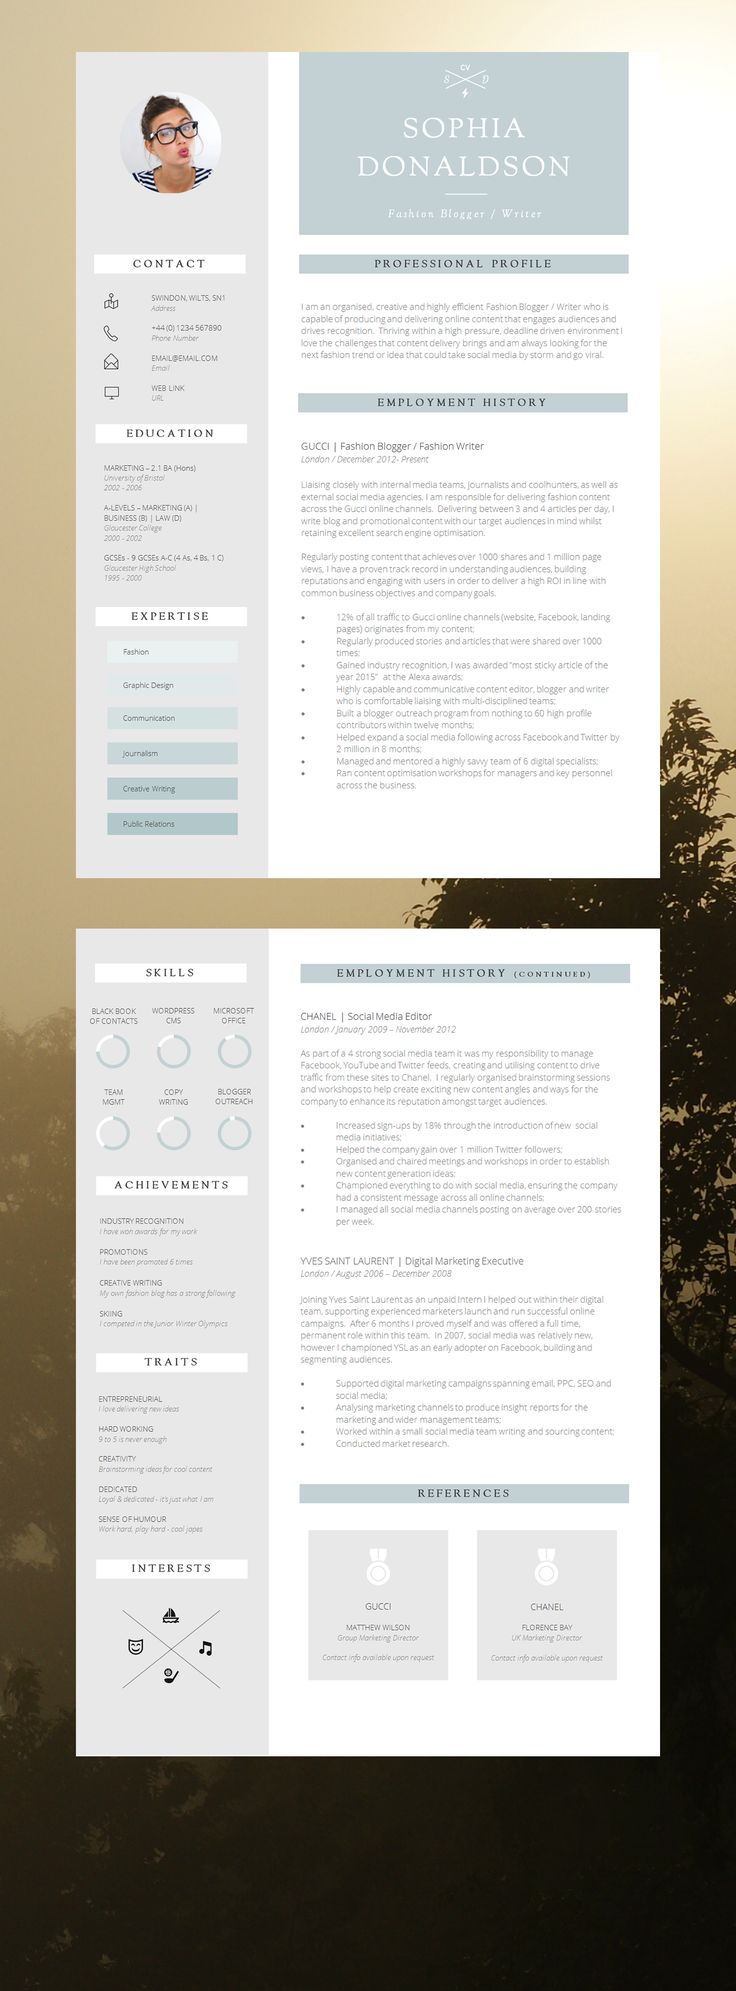 best ideas about cv design creative cv design cv template modern cv design don t underestimate the power of a professional